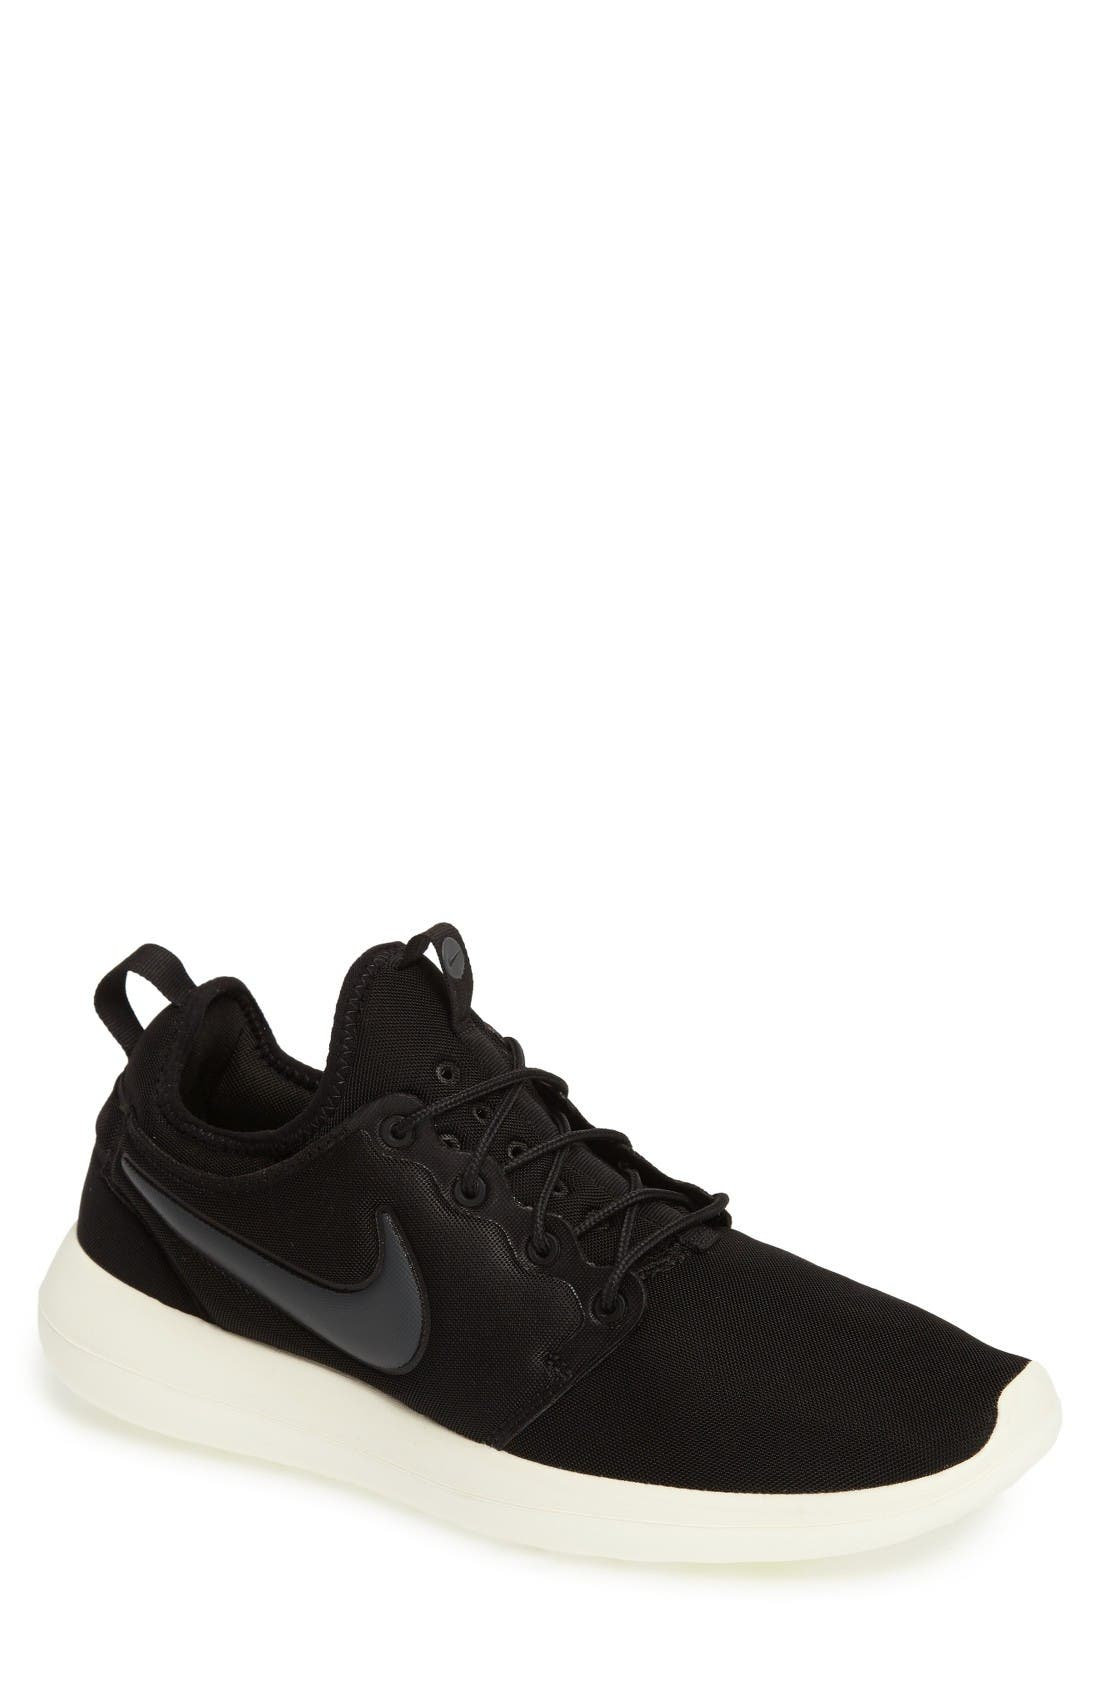 Roshe Two Sneaker,                             Main thumbnail 1, color,                             Black/ Anthracite/ Sail/ Volt